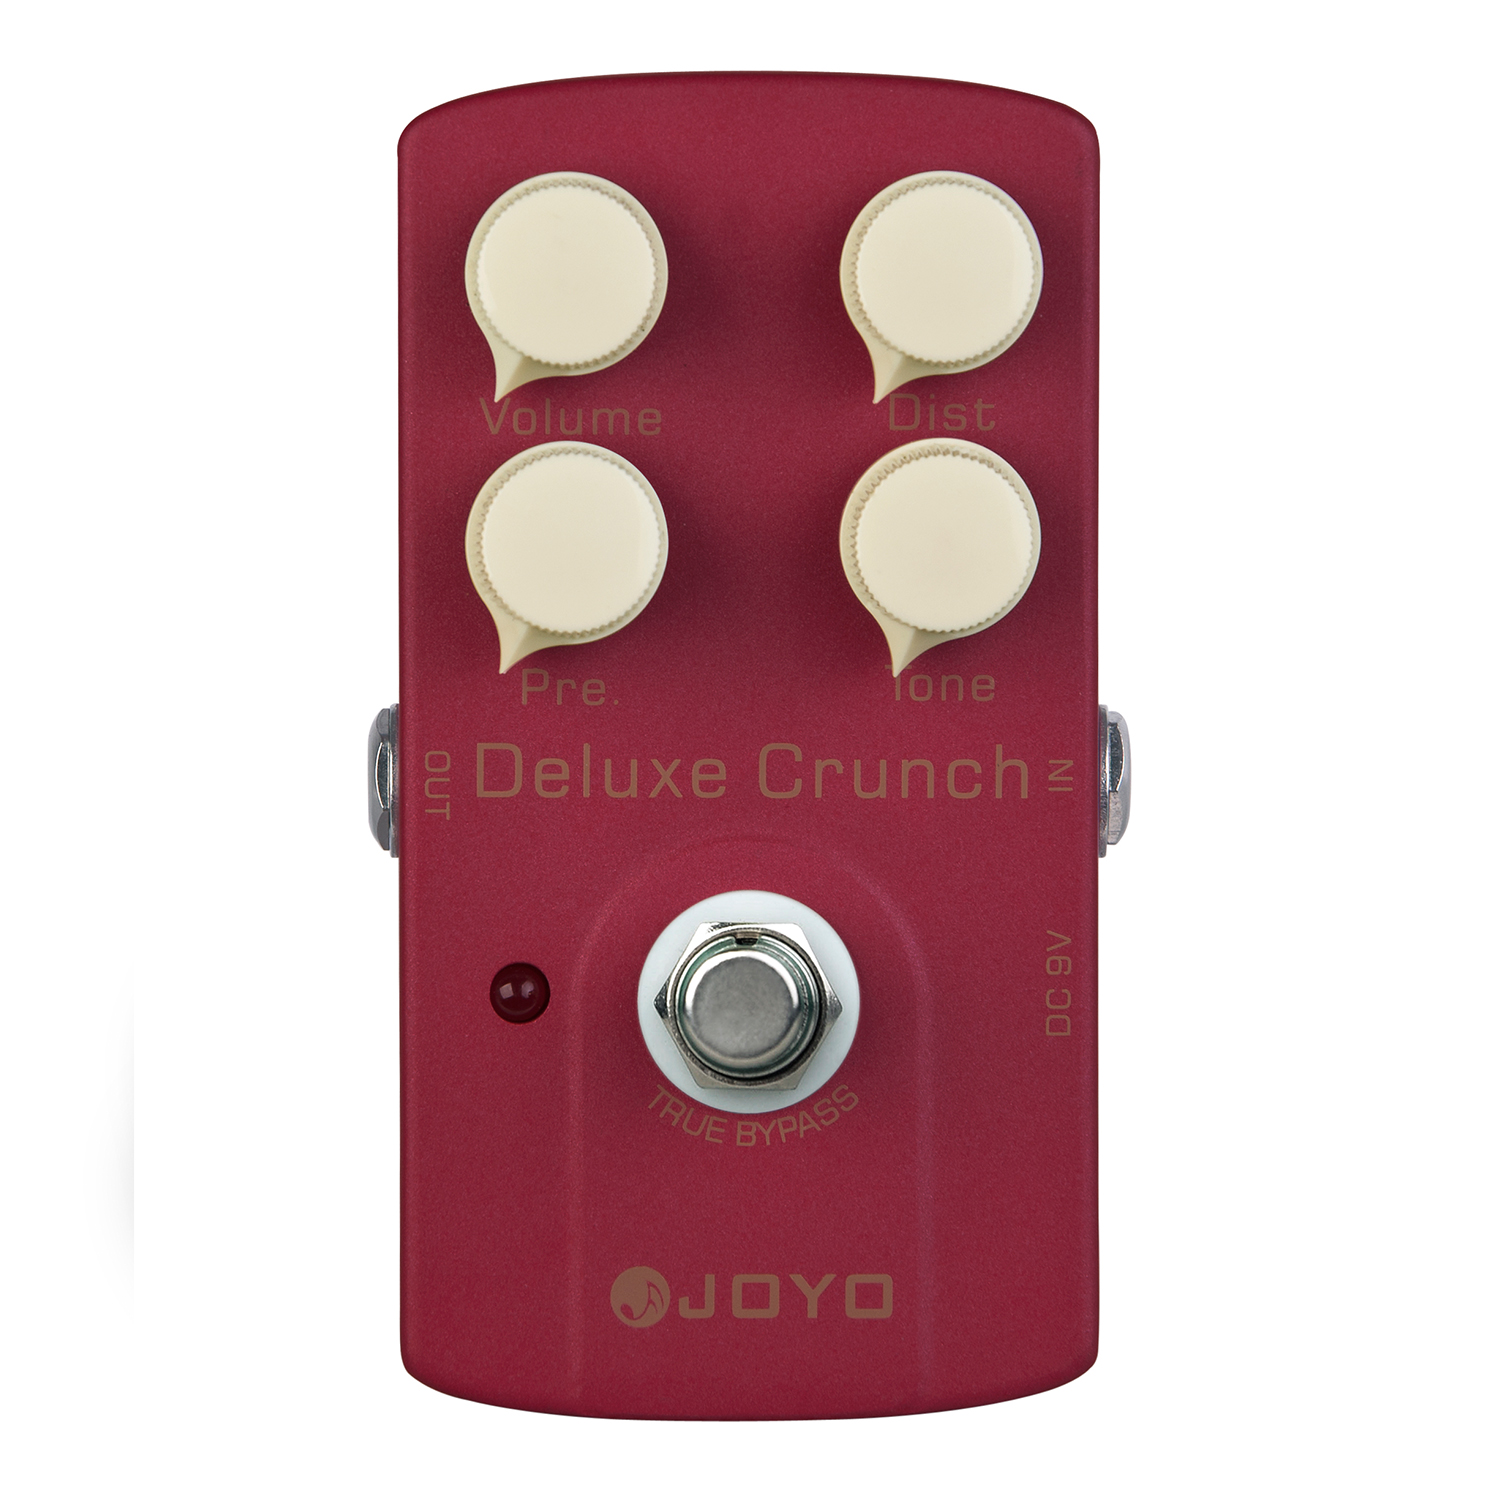 JOYO JF-39 Deluxe Crunch Electric Guitar Effect Pedal True Bypass JF 39 jf